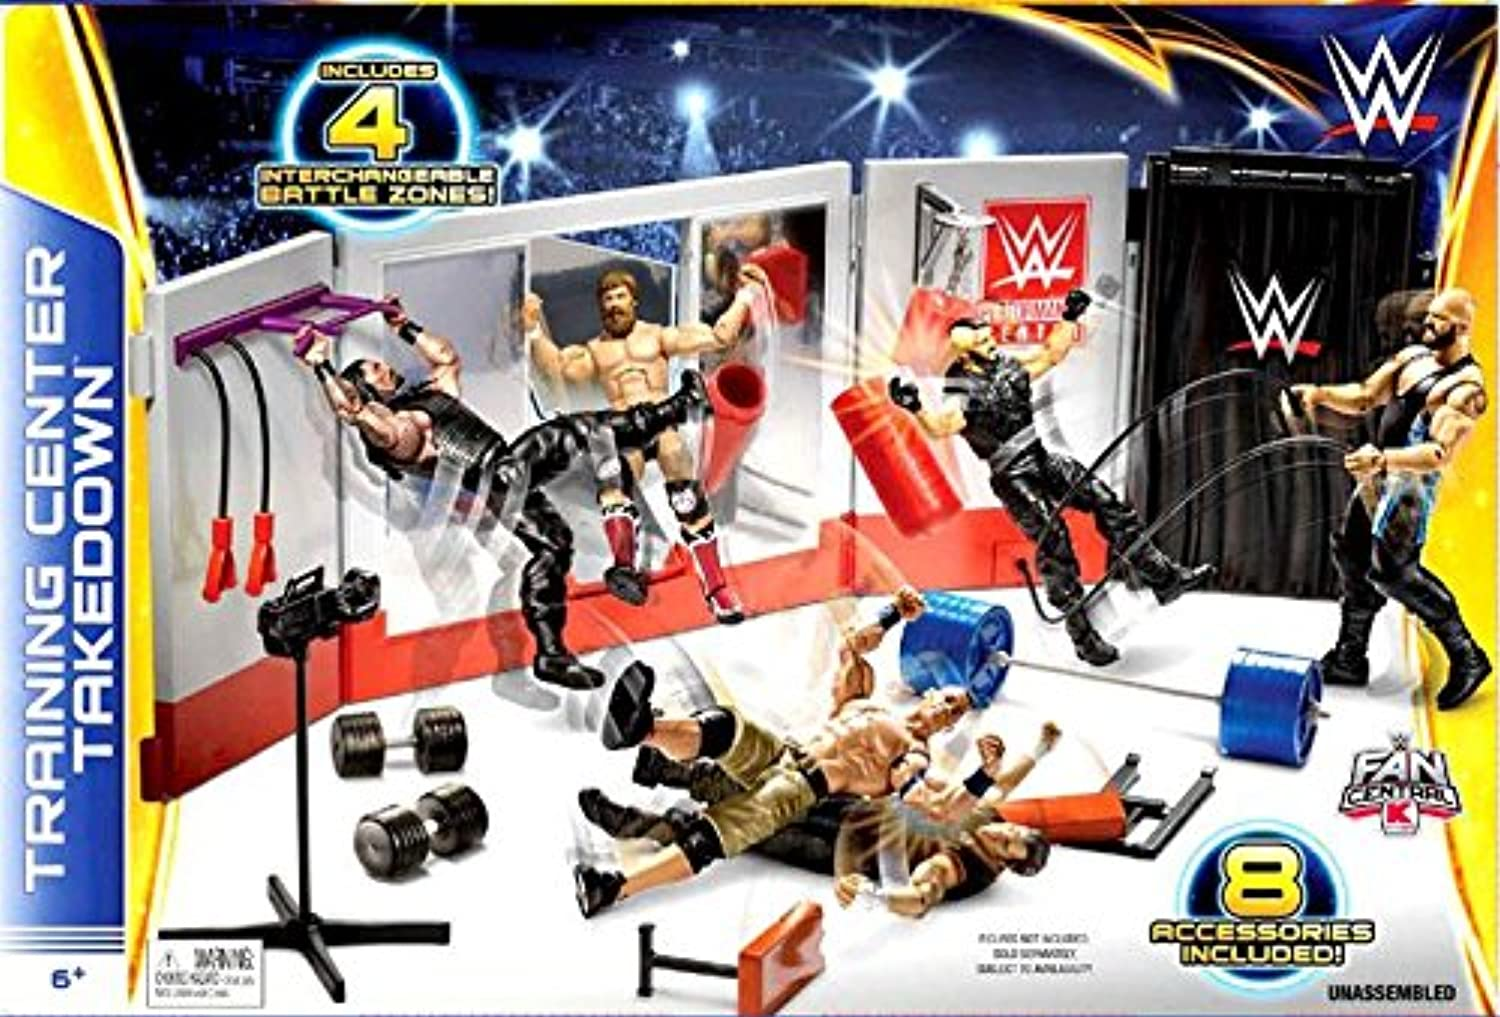 WWE Wrestling Fan Central Playset Training Center Takedown